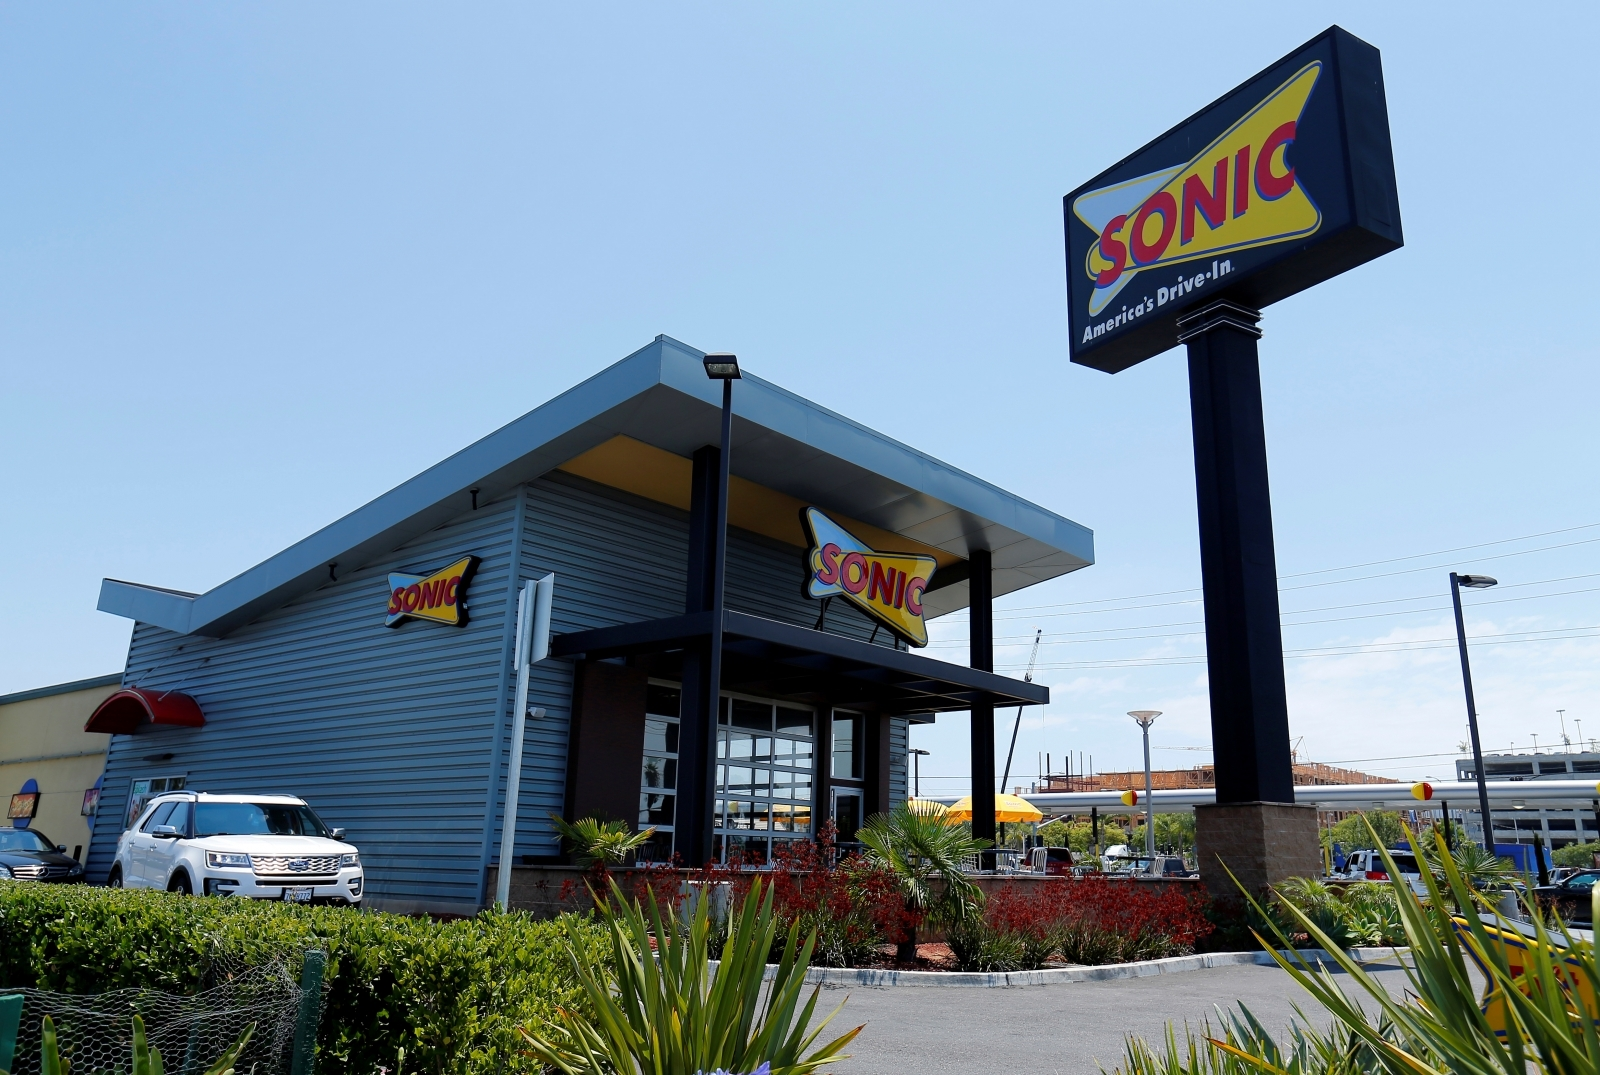 Sonic confirms credit card investigation